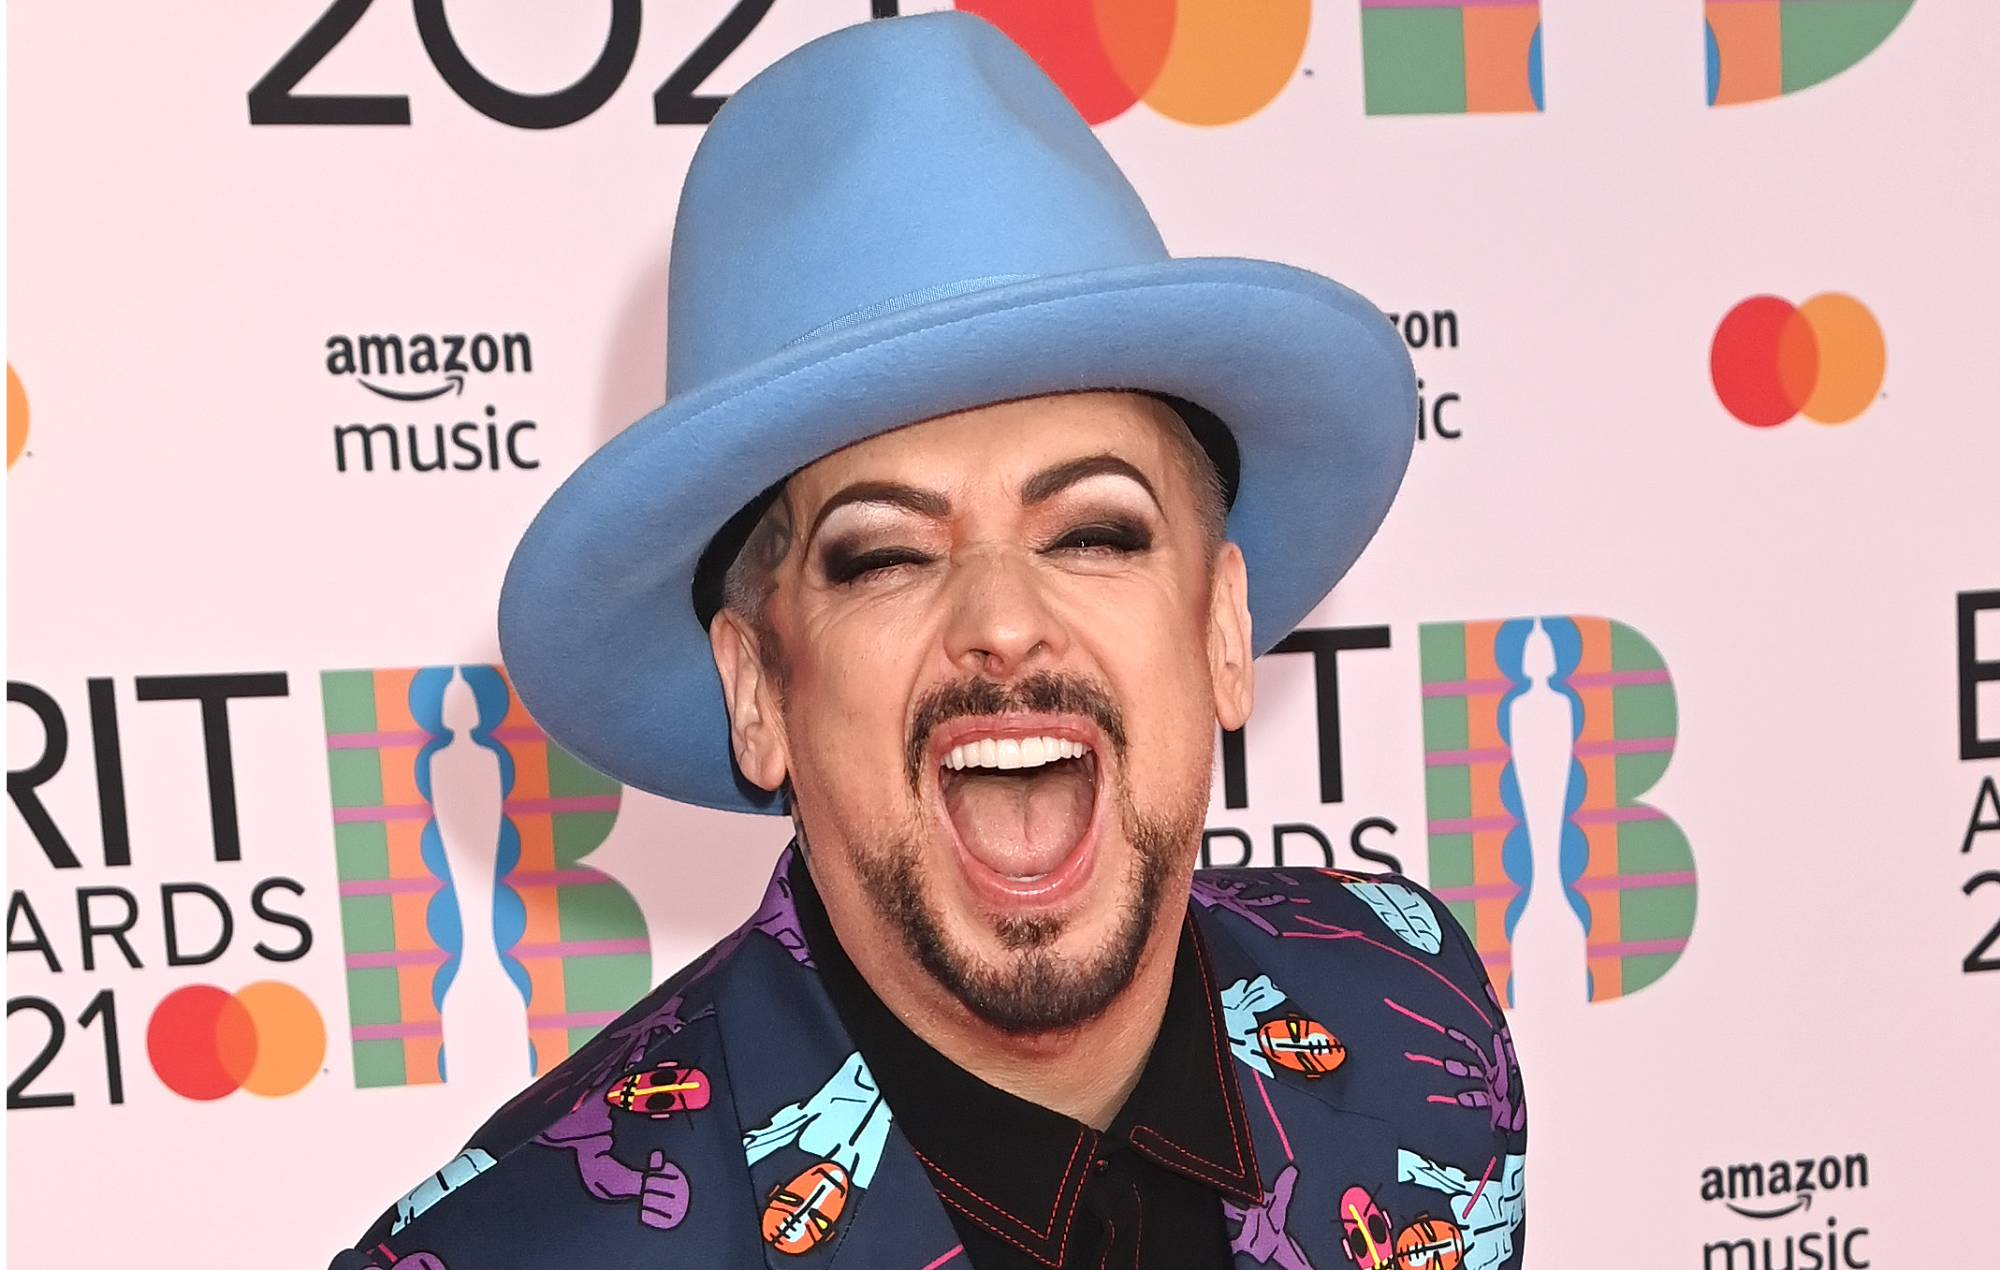 Boy George attends The BRIT Awards 2021 at The O2 Arena on May 11, 2021 in London, England. (Photo by Dave J Hogan/Getty Images)